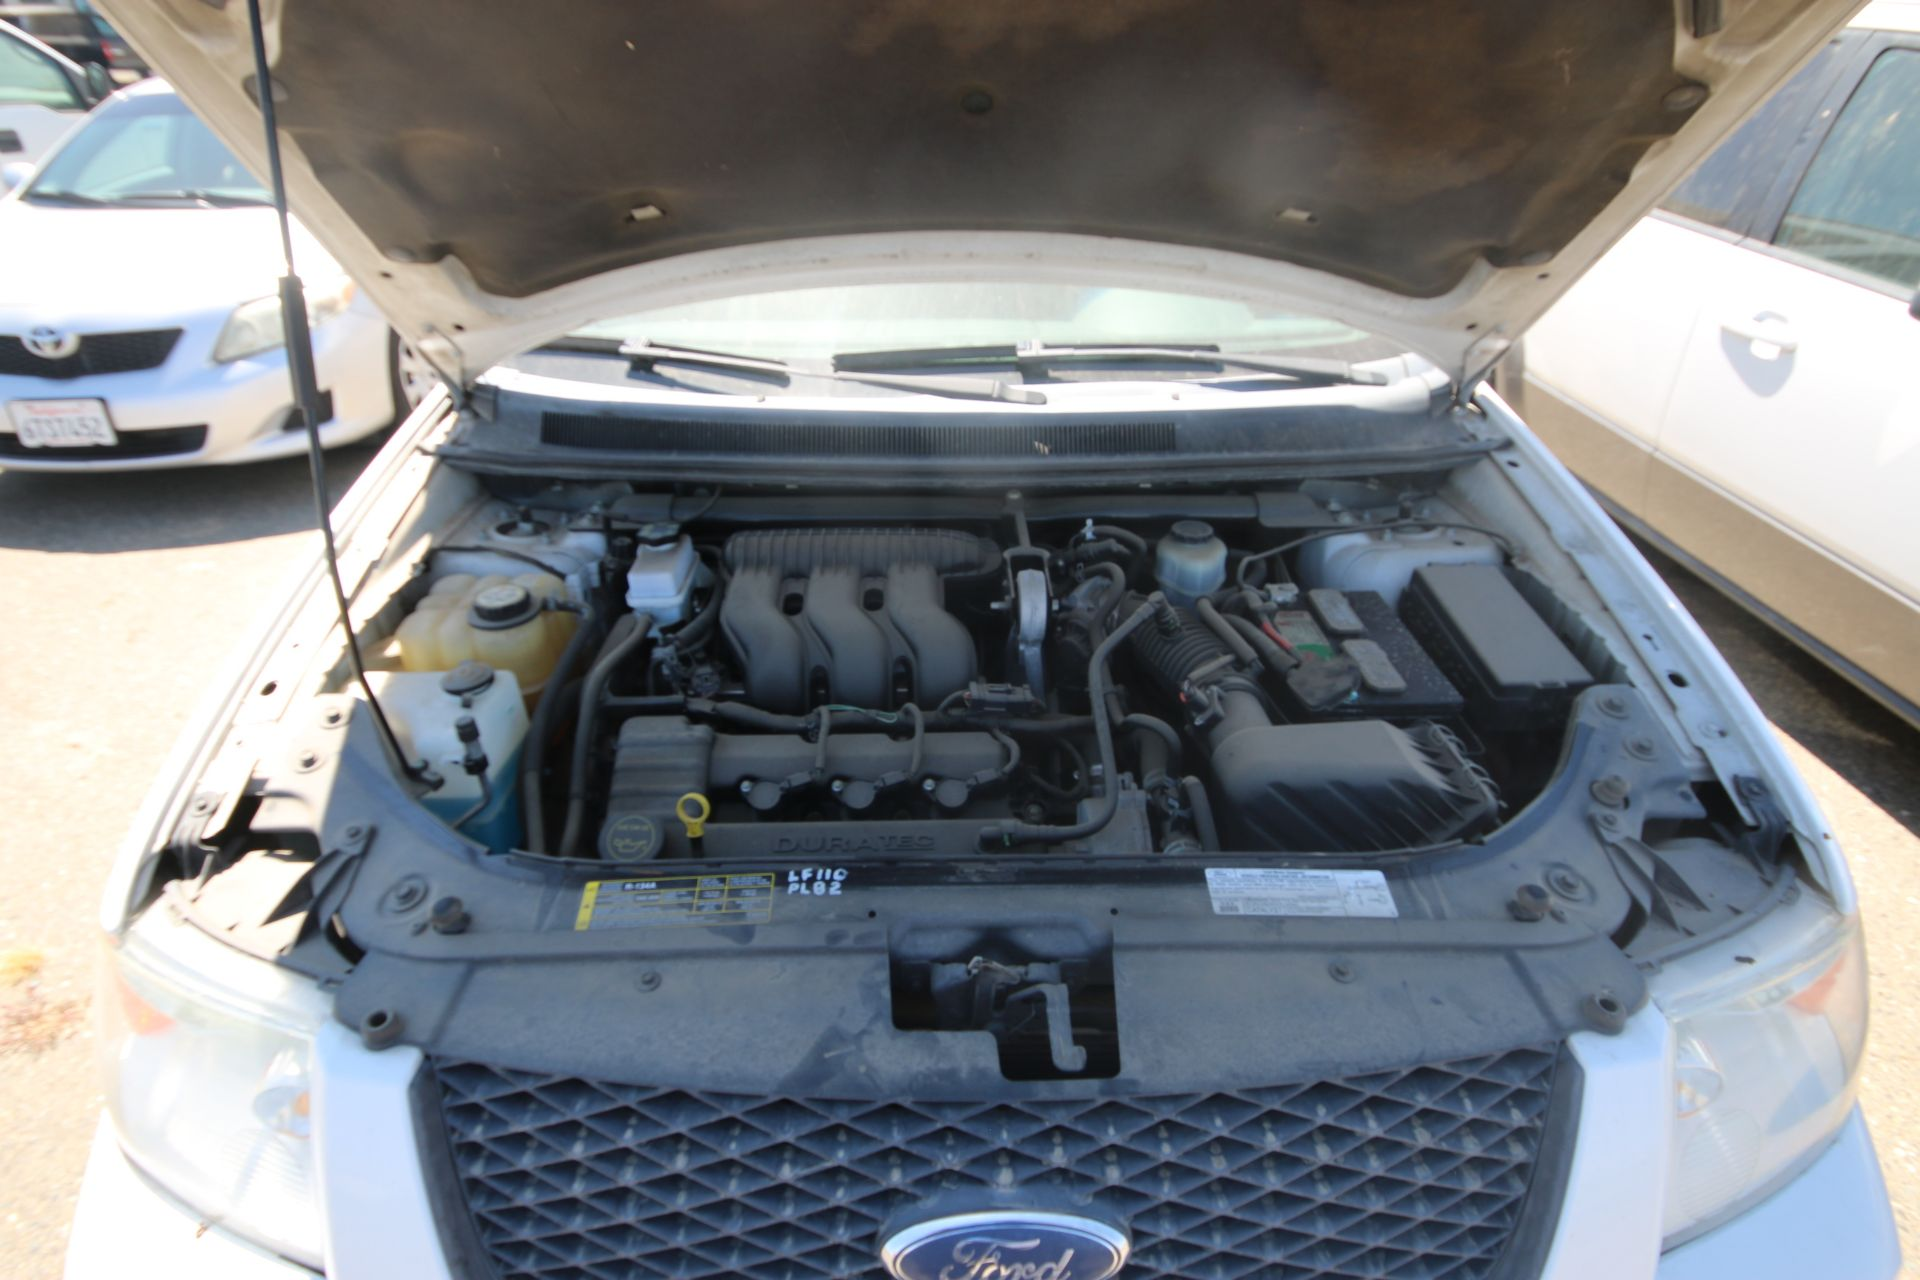 2006 Ford Freestyle, VIN #: 1FMDKO11X6GA41766, with 108,982 Miles, License Plate #: 5NGZ608, Started - Image 19 of 22